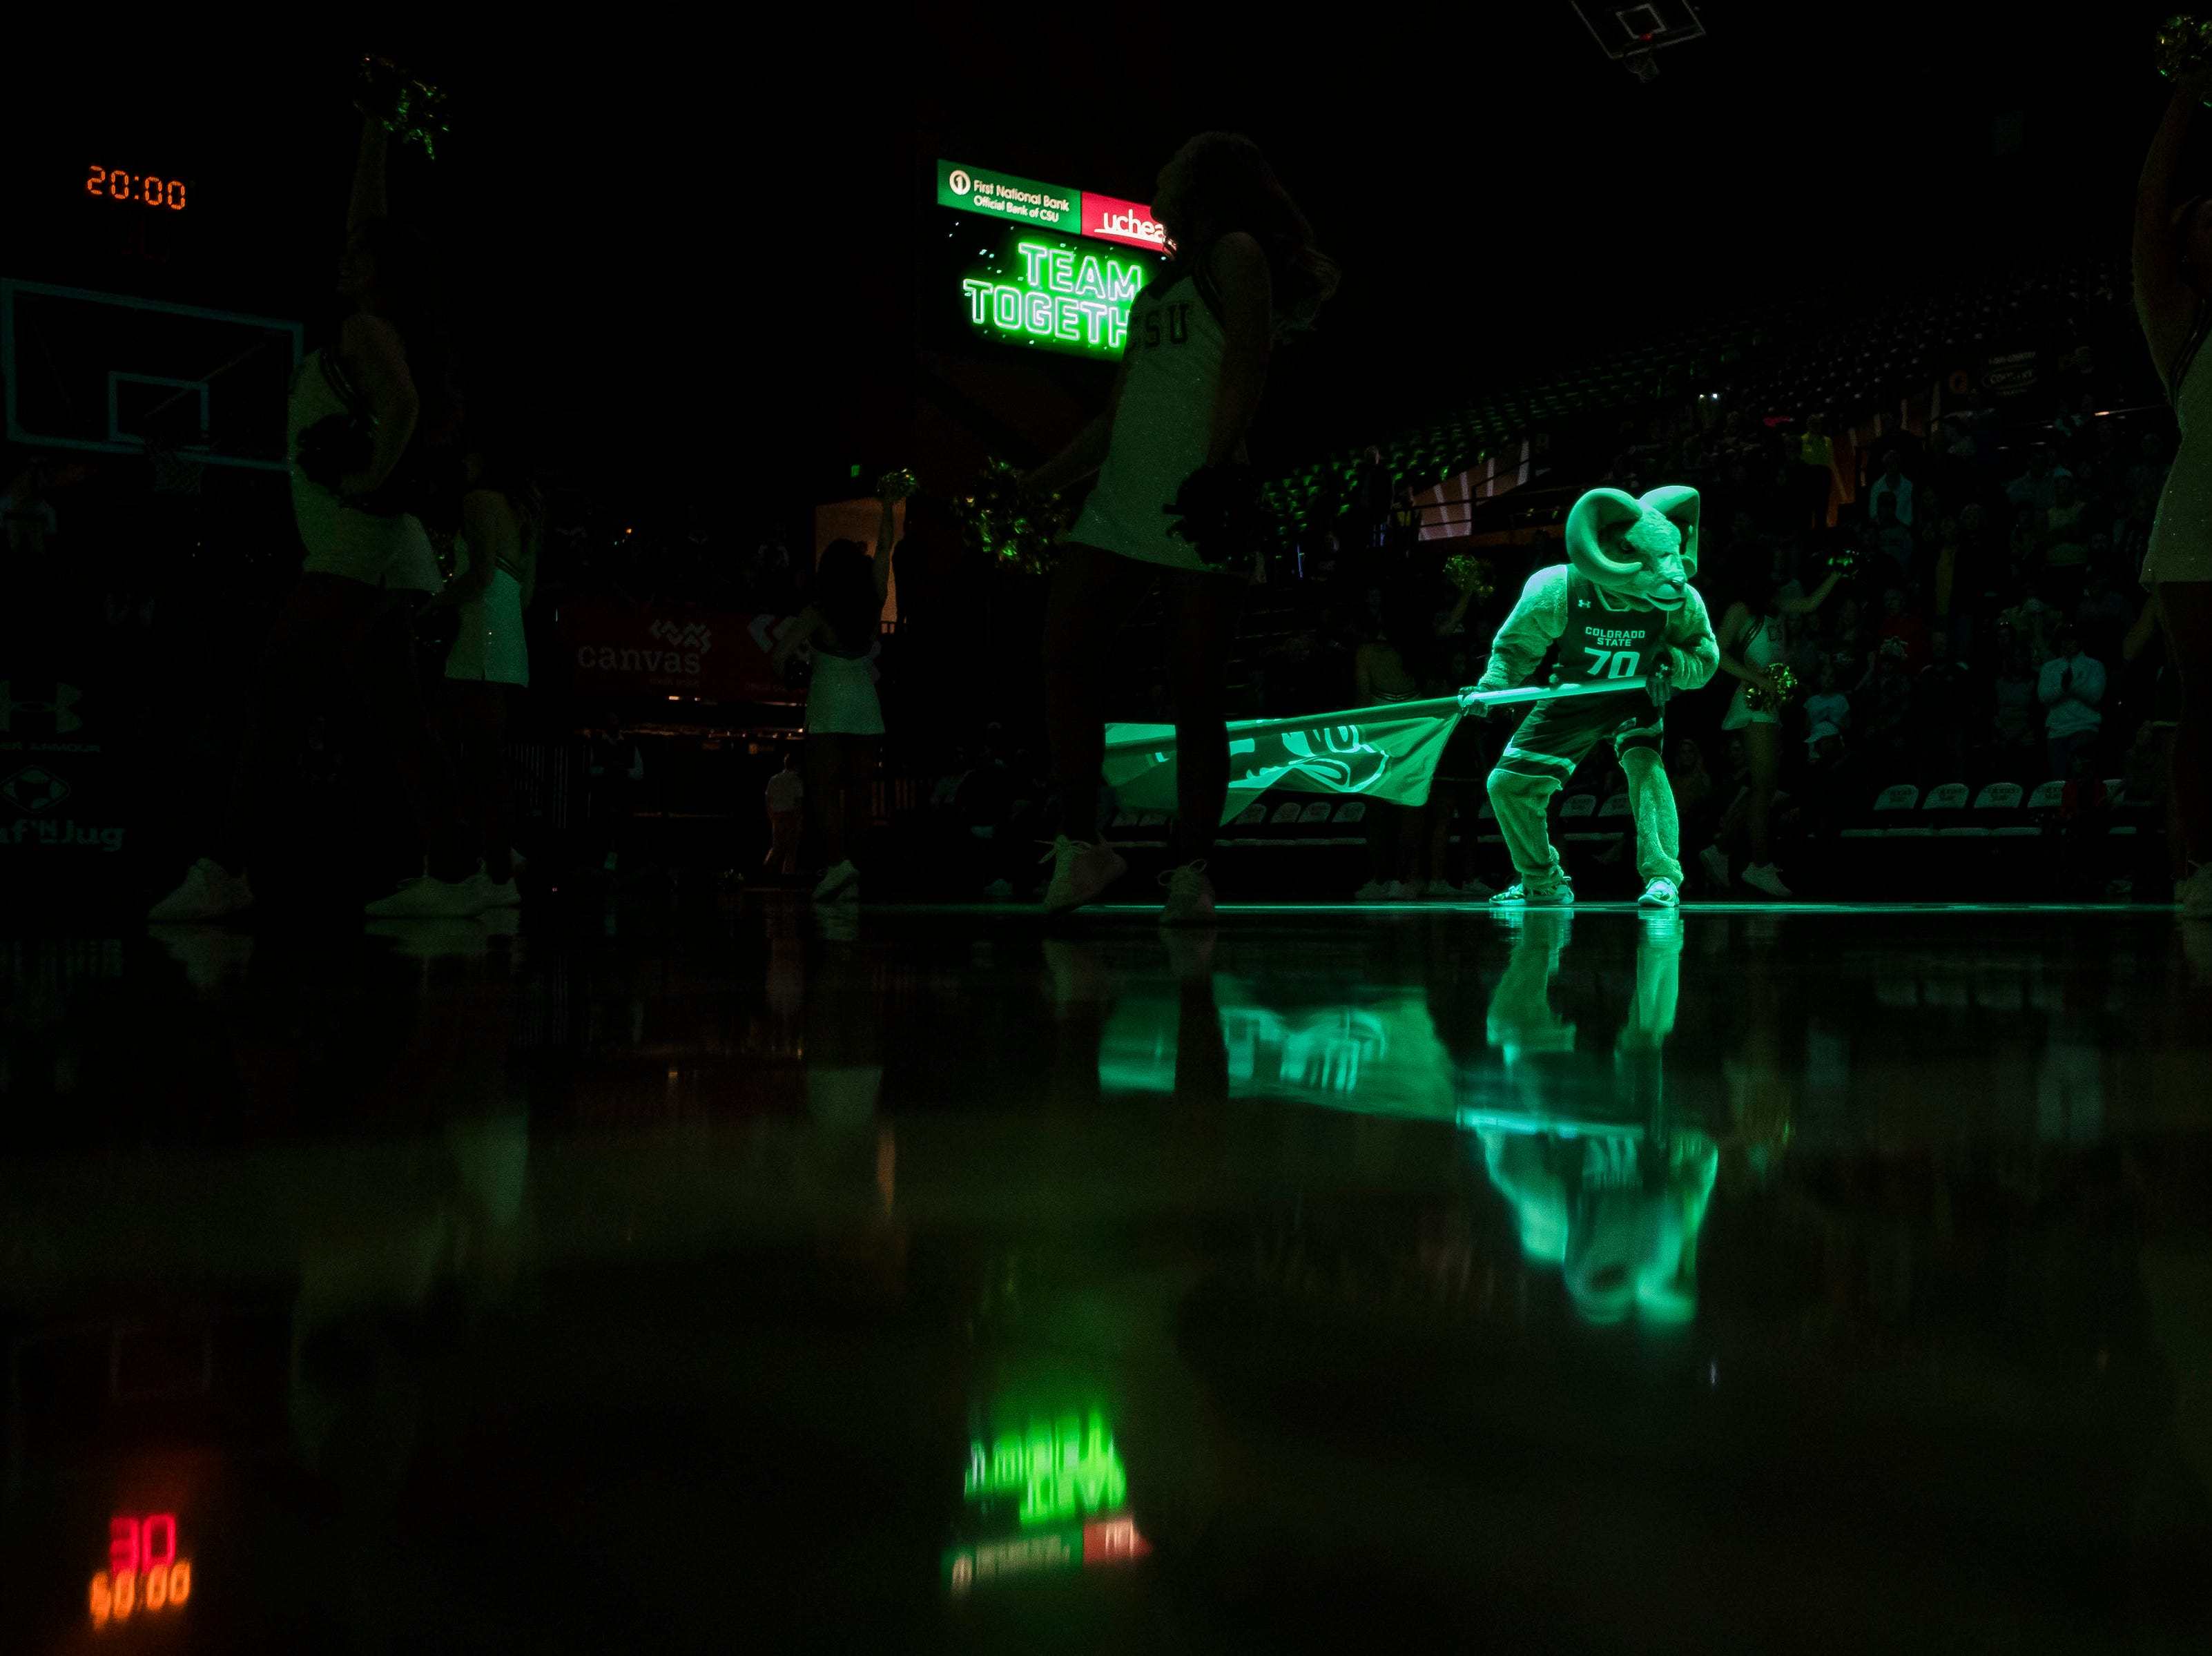 Colorado State University mascot Cam the Ram performs before a game against University of Nevada Las Vegas on Saturday, March 9, 2019, at Moby Arena in Fort Collins, Colo.